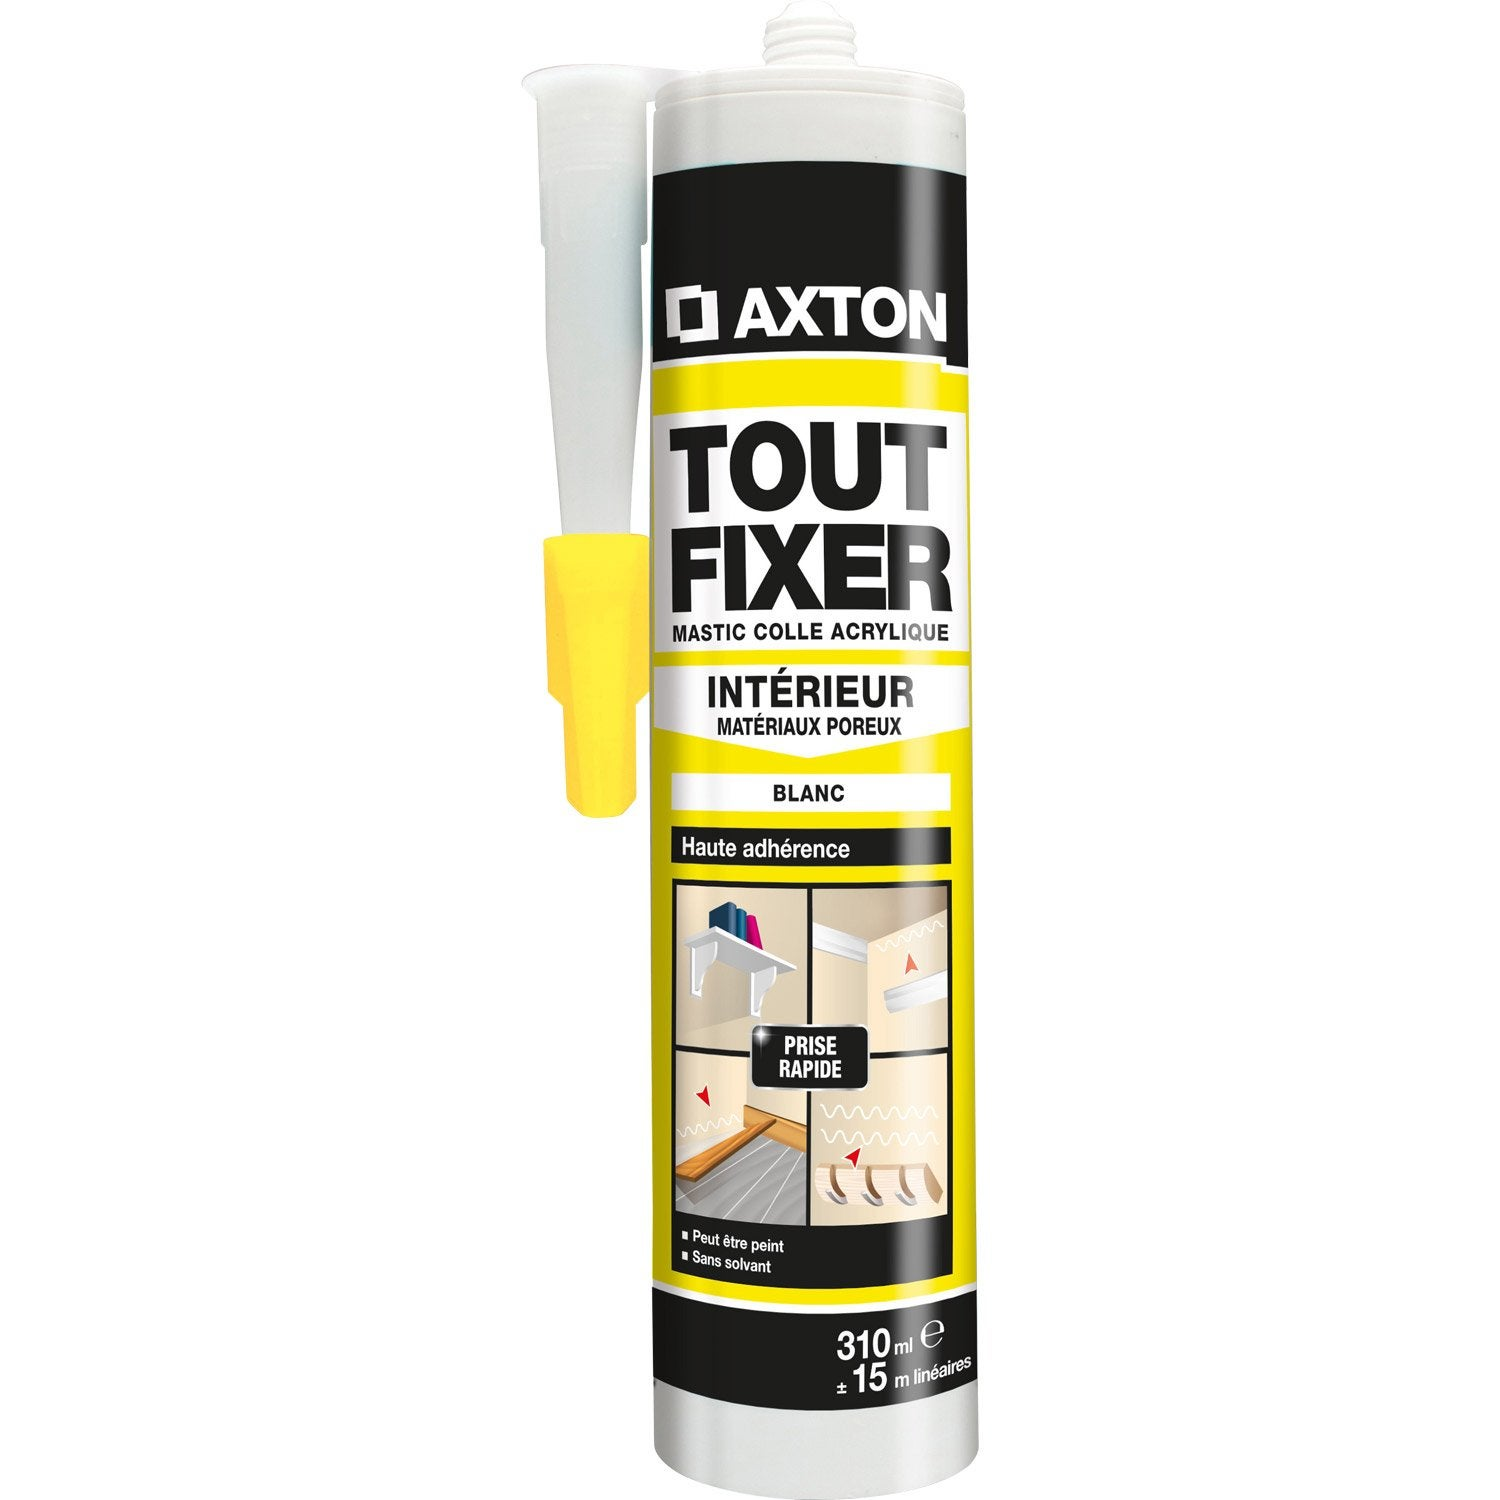 Colle mastic tout fixer axton 310 ml leroy merlin for Carrelage sans colle leroy merlin